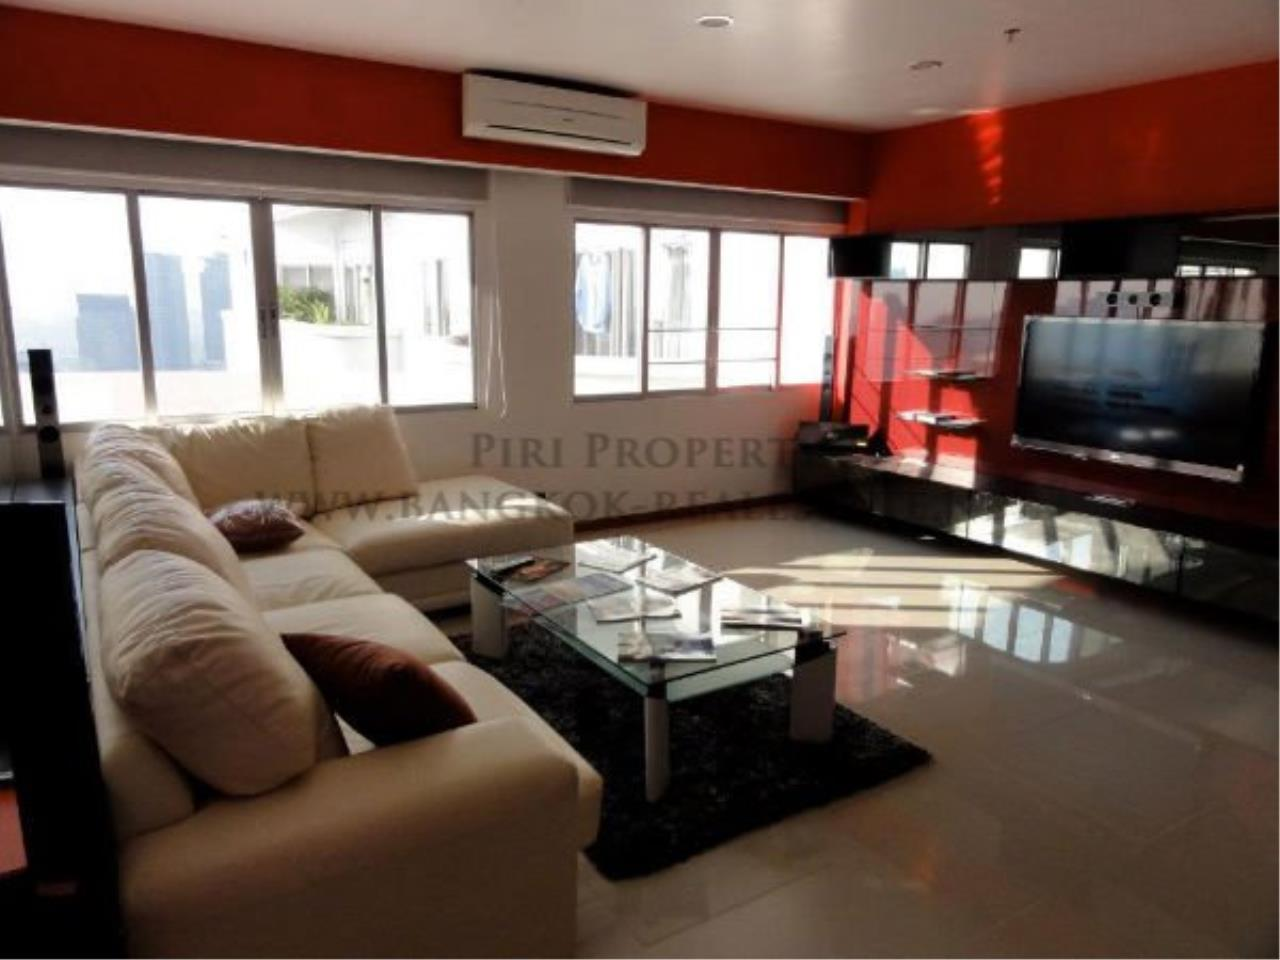 Piri Property Agency's Spacious and Renovated 3 BR Condo near Ploenchit BTS 1